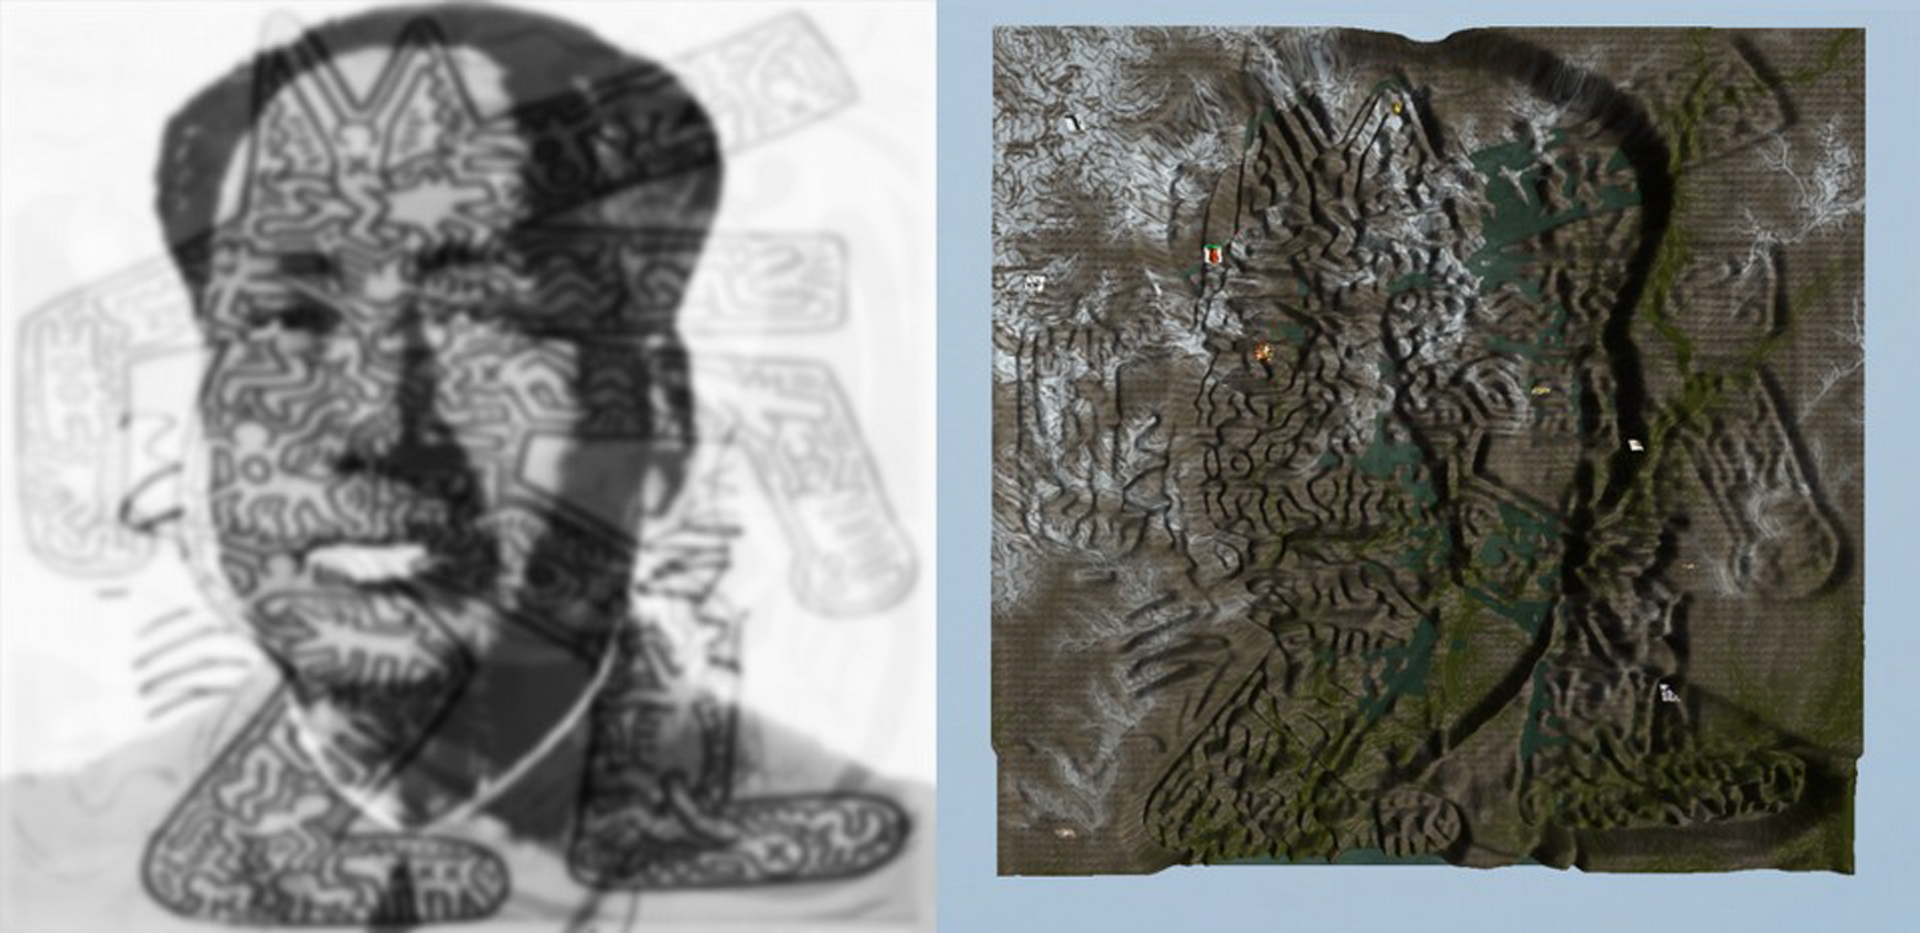 ©ISEA2016: 22nd International Symposium on Electronic Art, Fito Segrera, Accumulated Memory Landscapes: Real-time On-line 3D Landscapes Based on Prosthetic Memory Data